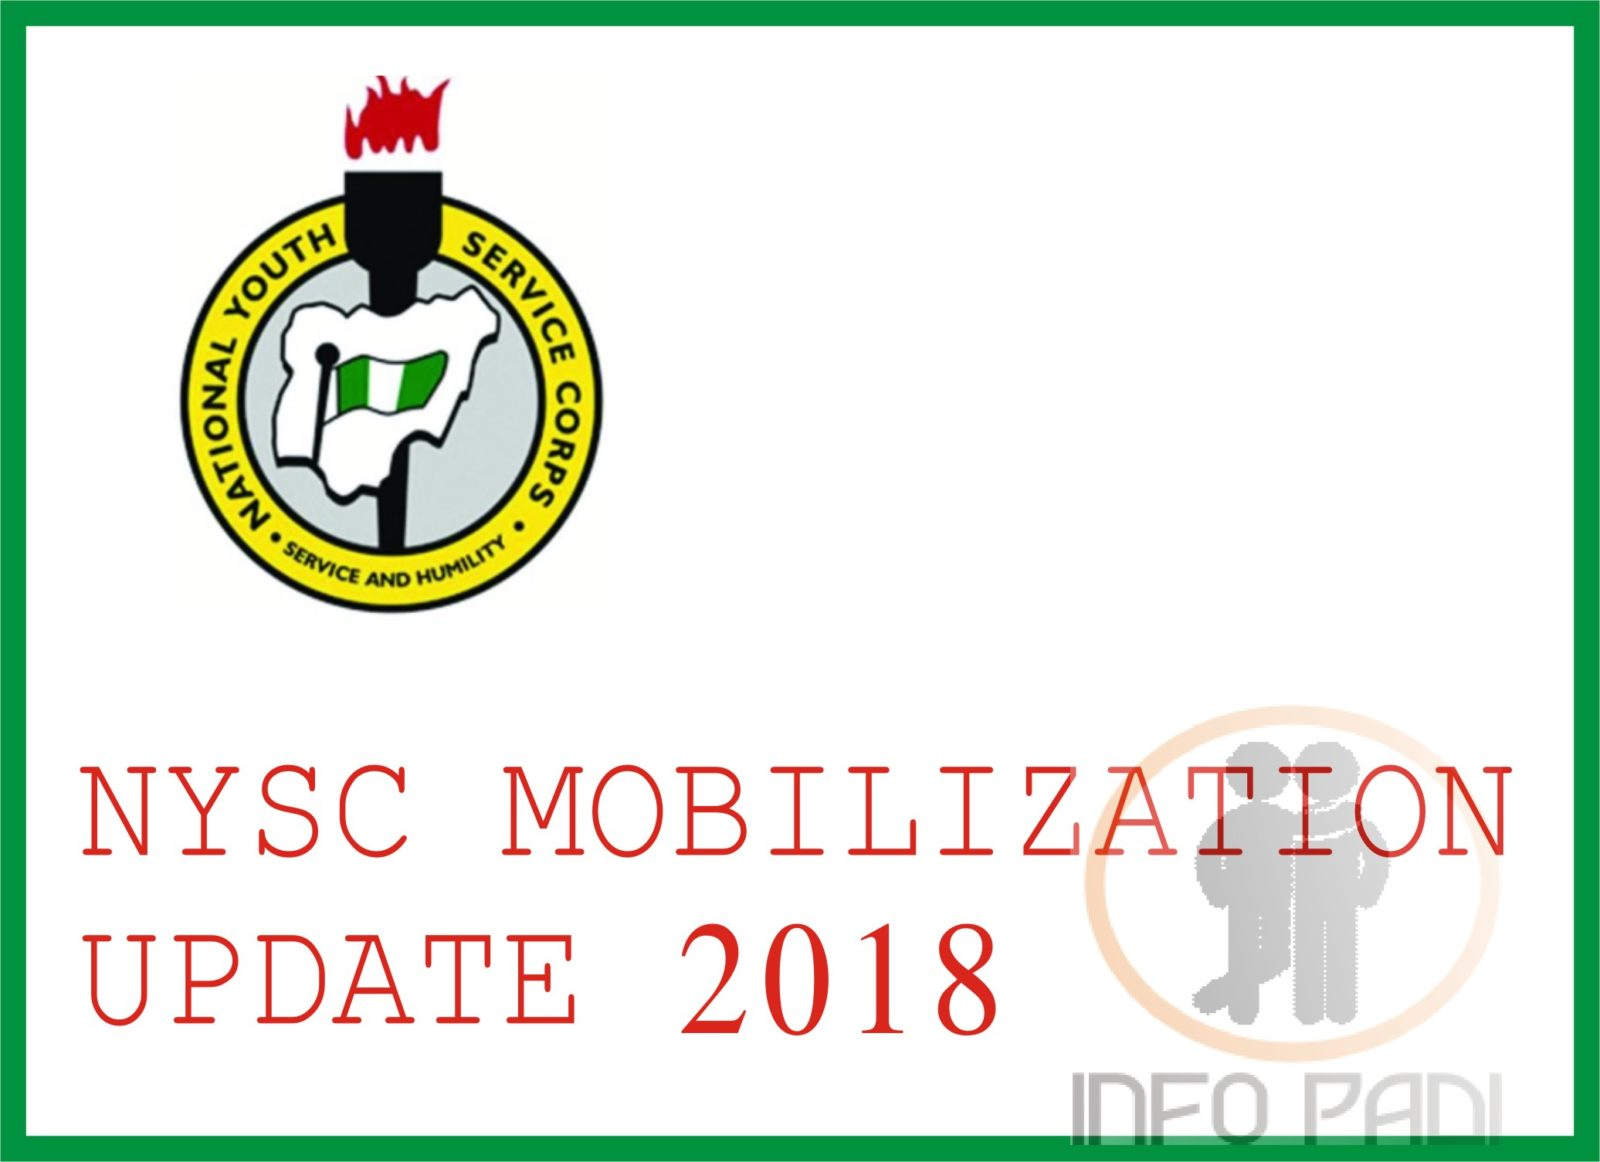 NYSC UPDATE 2018/2019- Mobilization guide for students and institutions- NYSC Batch A and Batch B